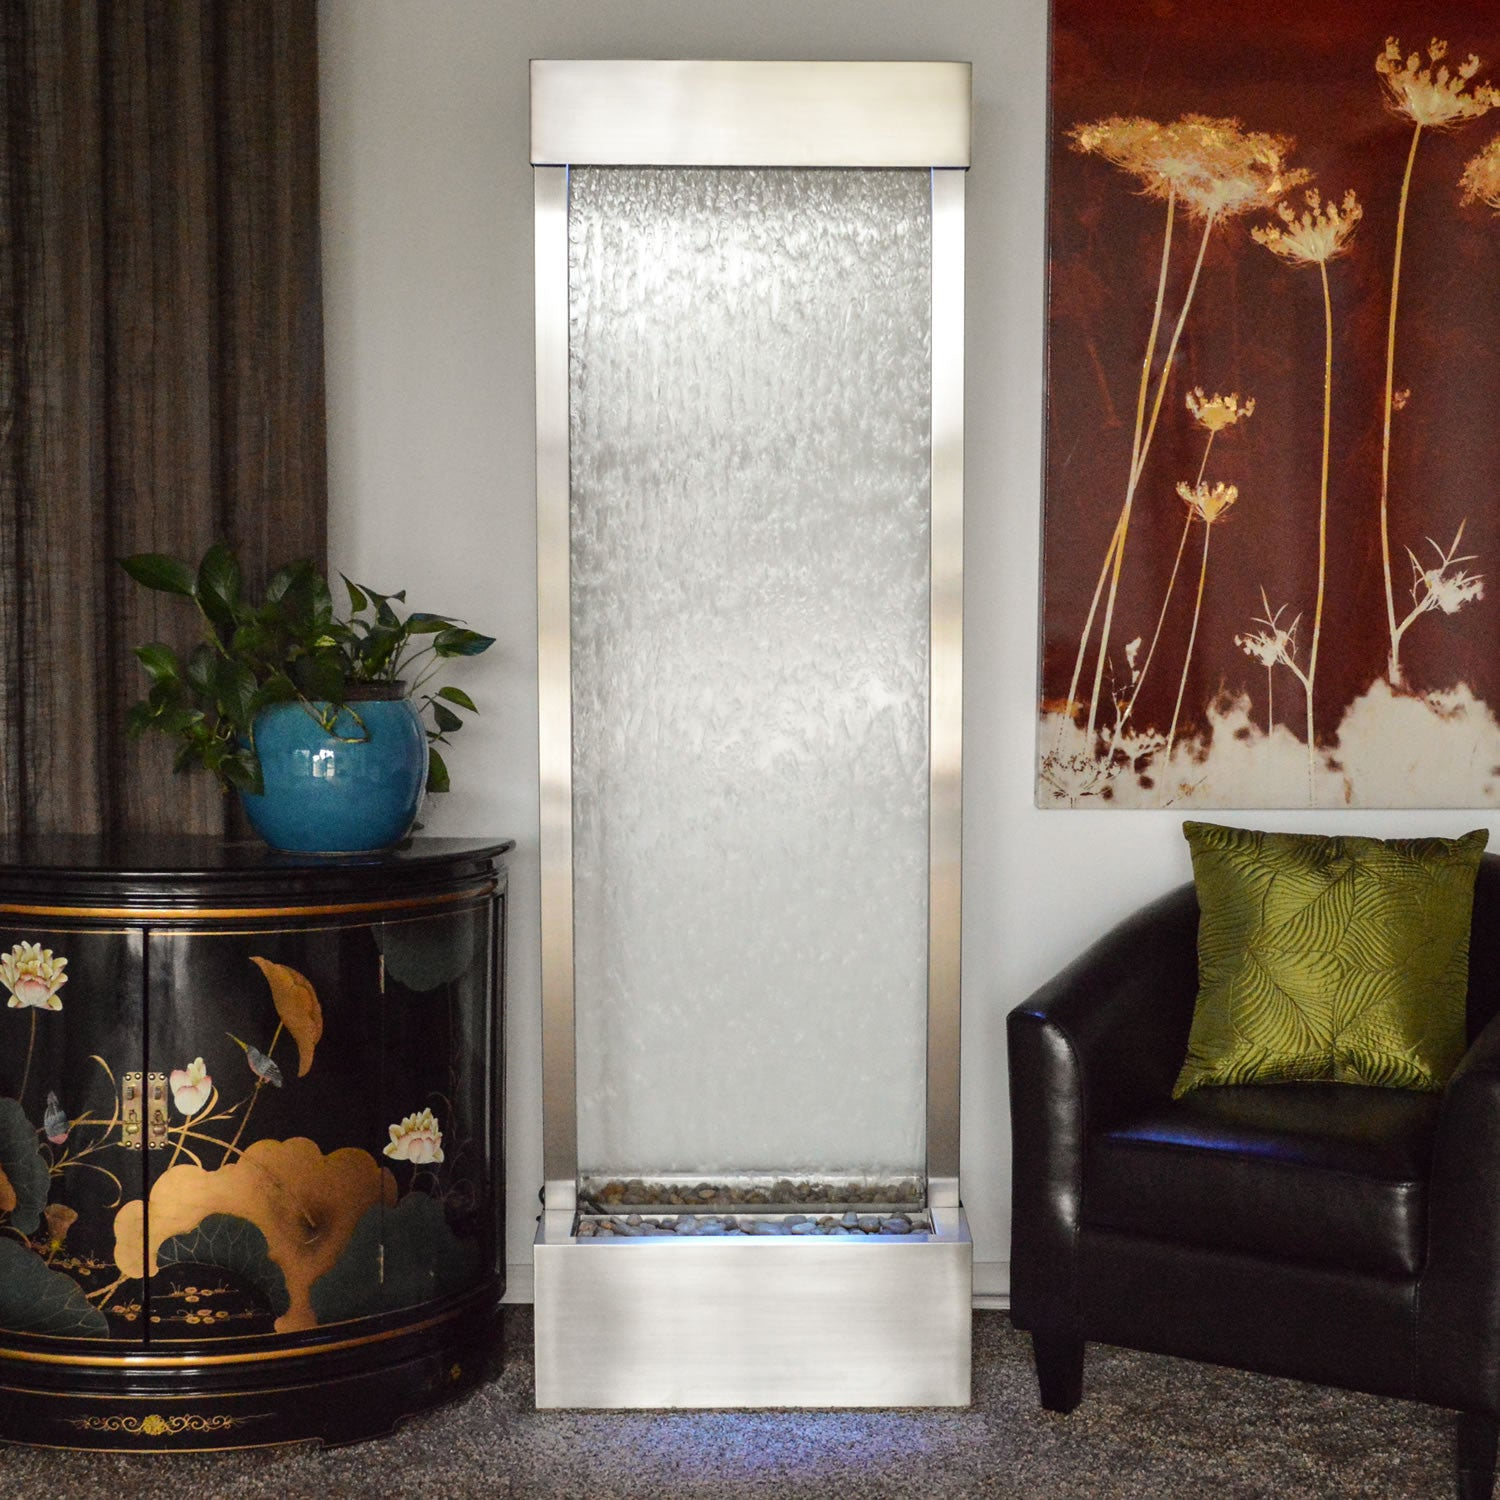 6' Gardenfall Clear Glass and Brushed Stainless Steel Frame with LED Lights - SoothingWalls